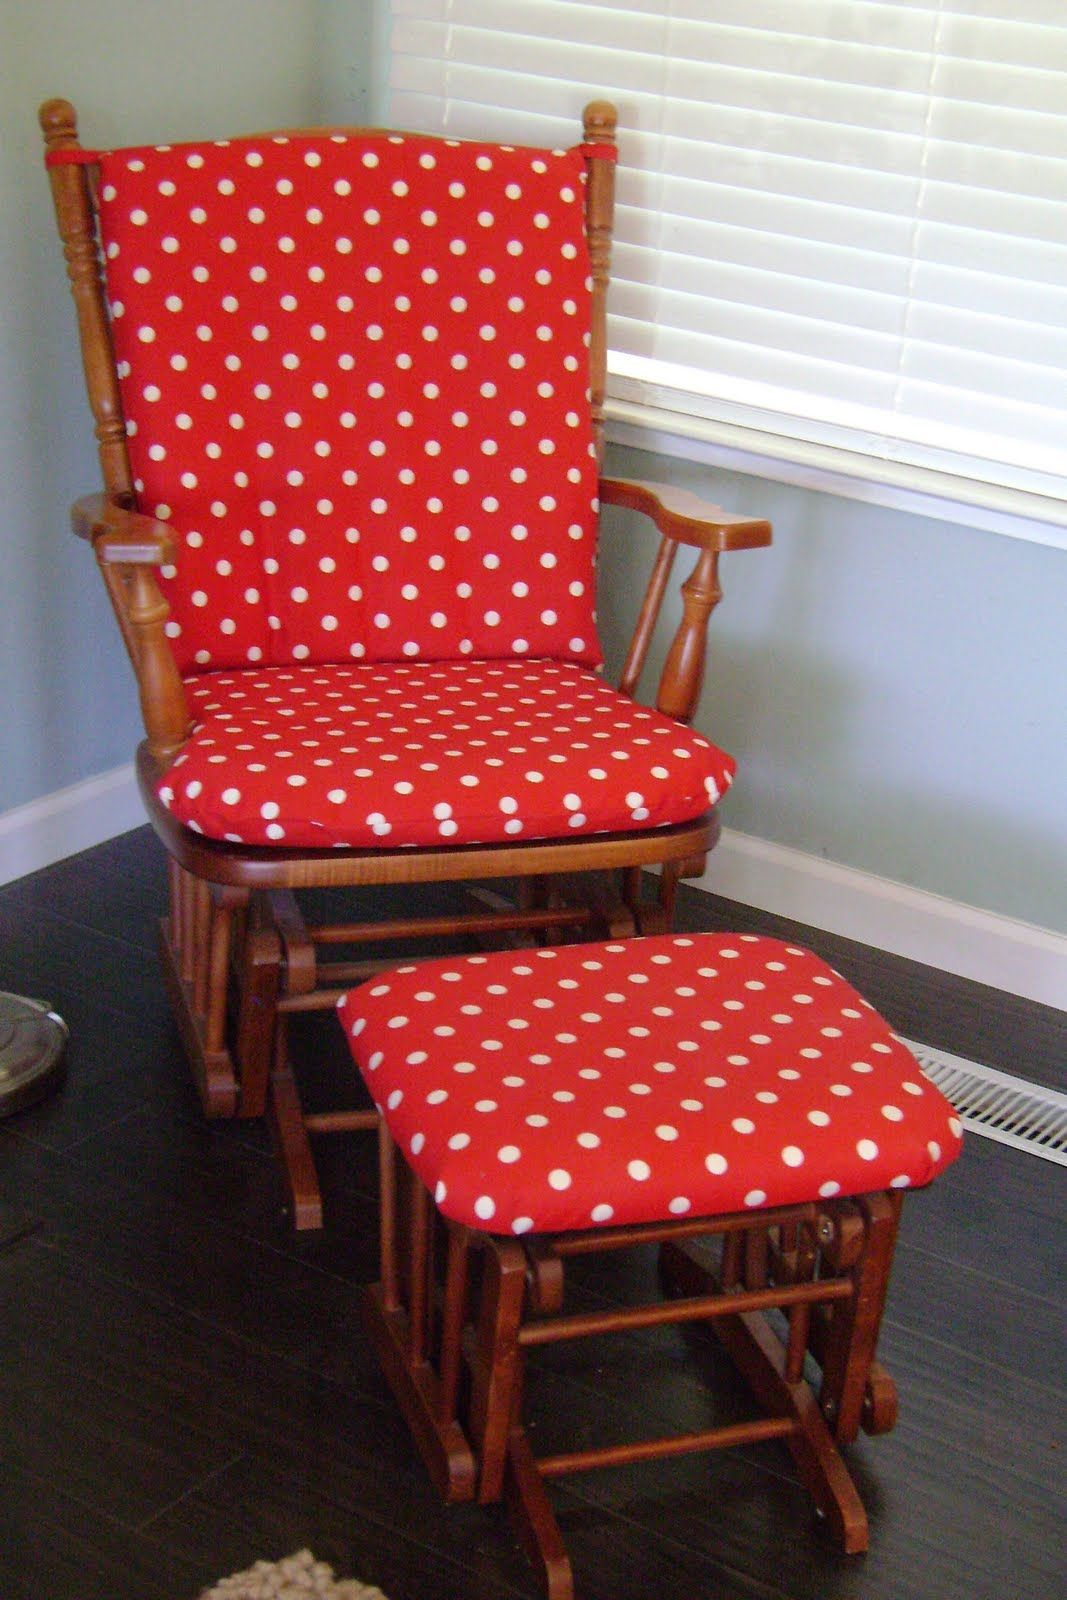 polka dot rocking chair cushions ghost replica chairs red and white glider baby 39s room ideas